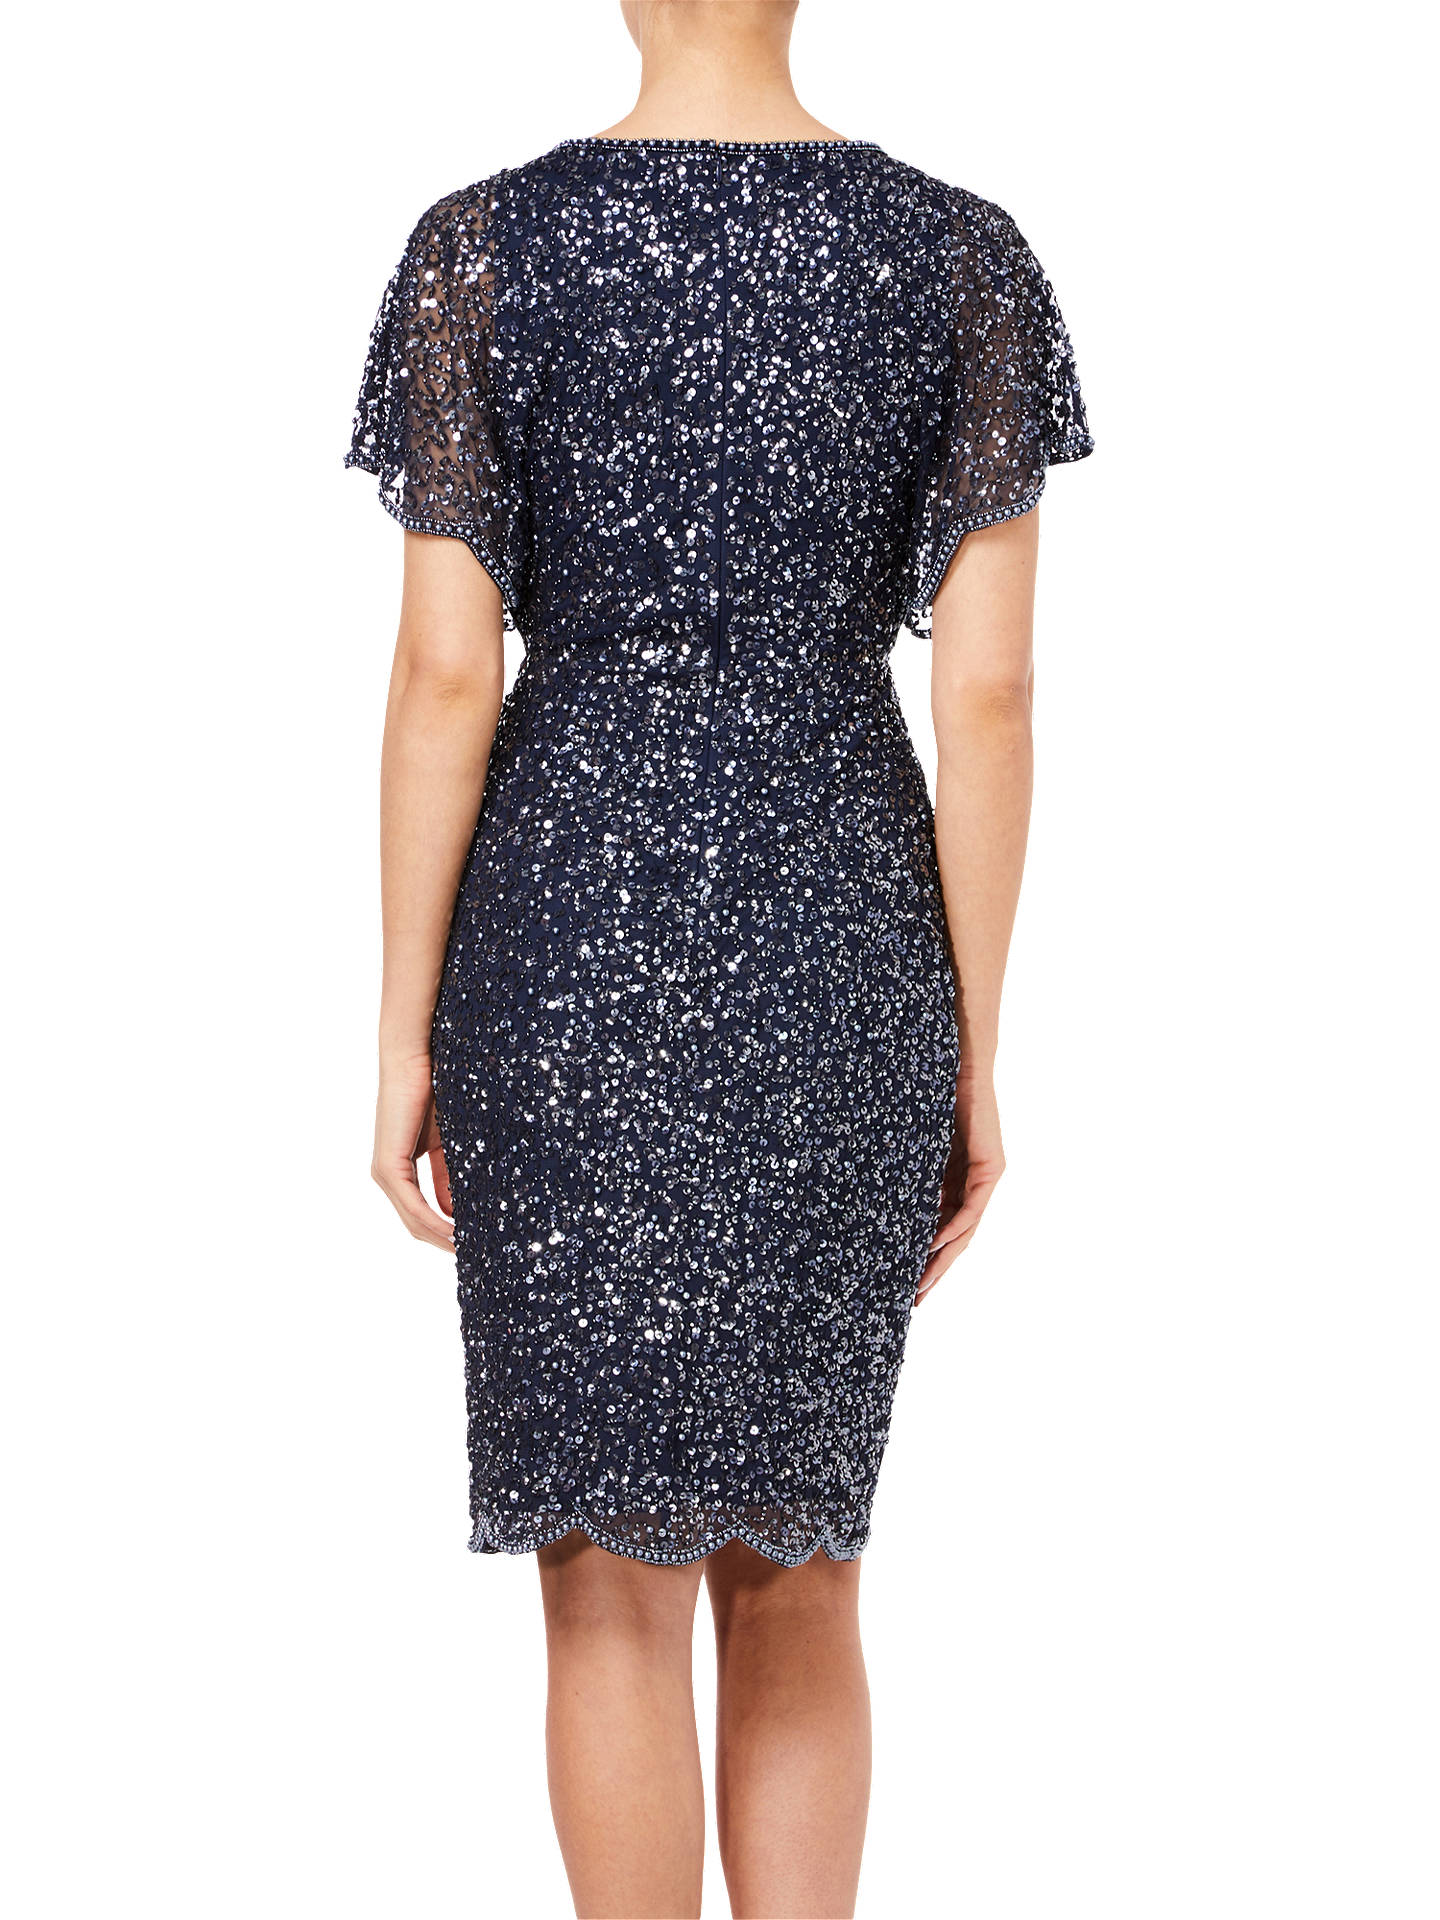 BuyAdrianna Papell Flutter Sleeve Bead Dress, Navy, 12 Online at johnlewis.com